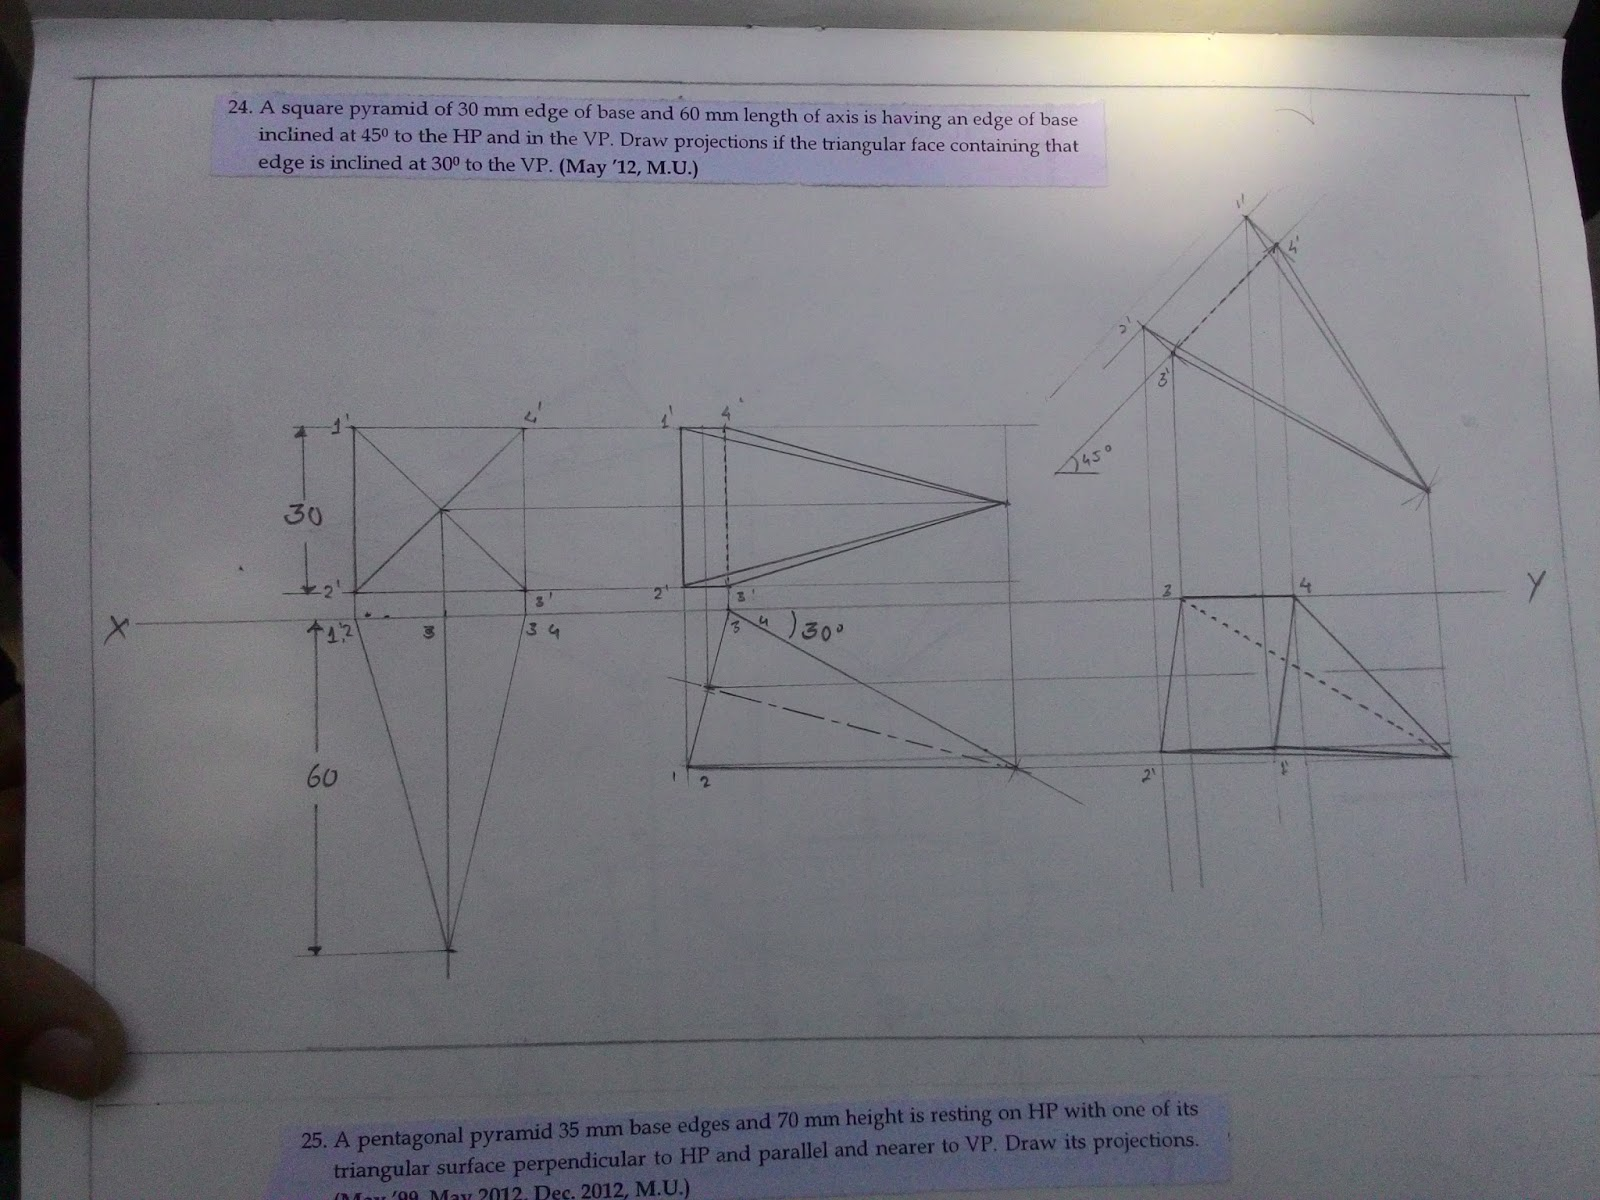 Base Of The Pyramid 30 Onkyo Eq25 Wiring Diagram Array Question Bank And Assignment Projection Solids Rh Qbassignment Blogspot Com